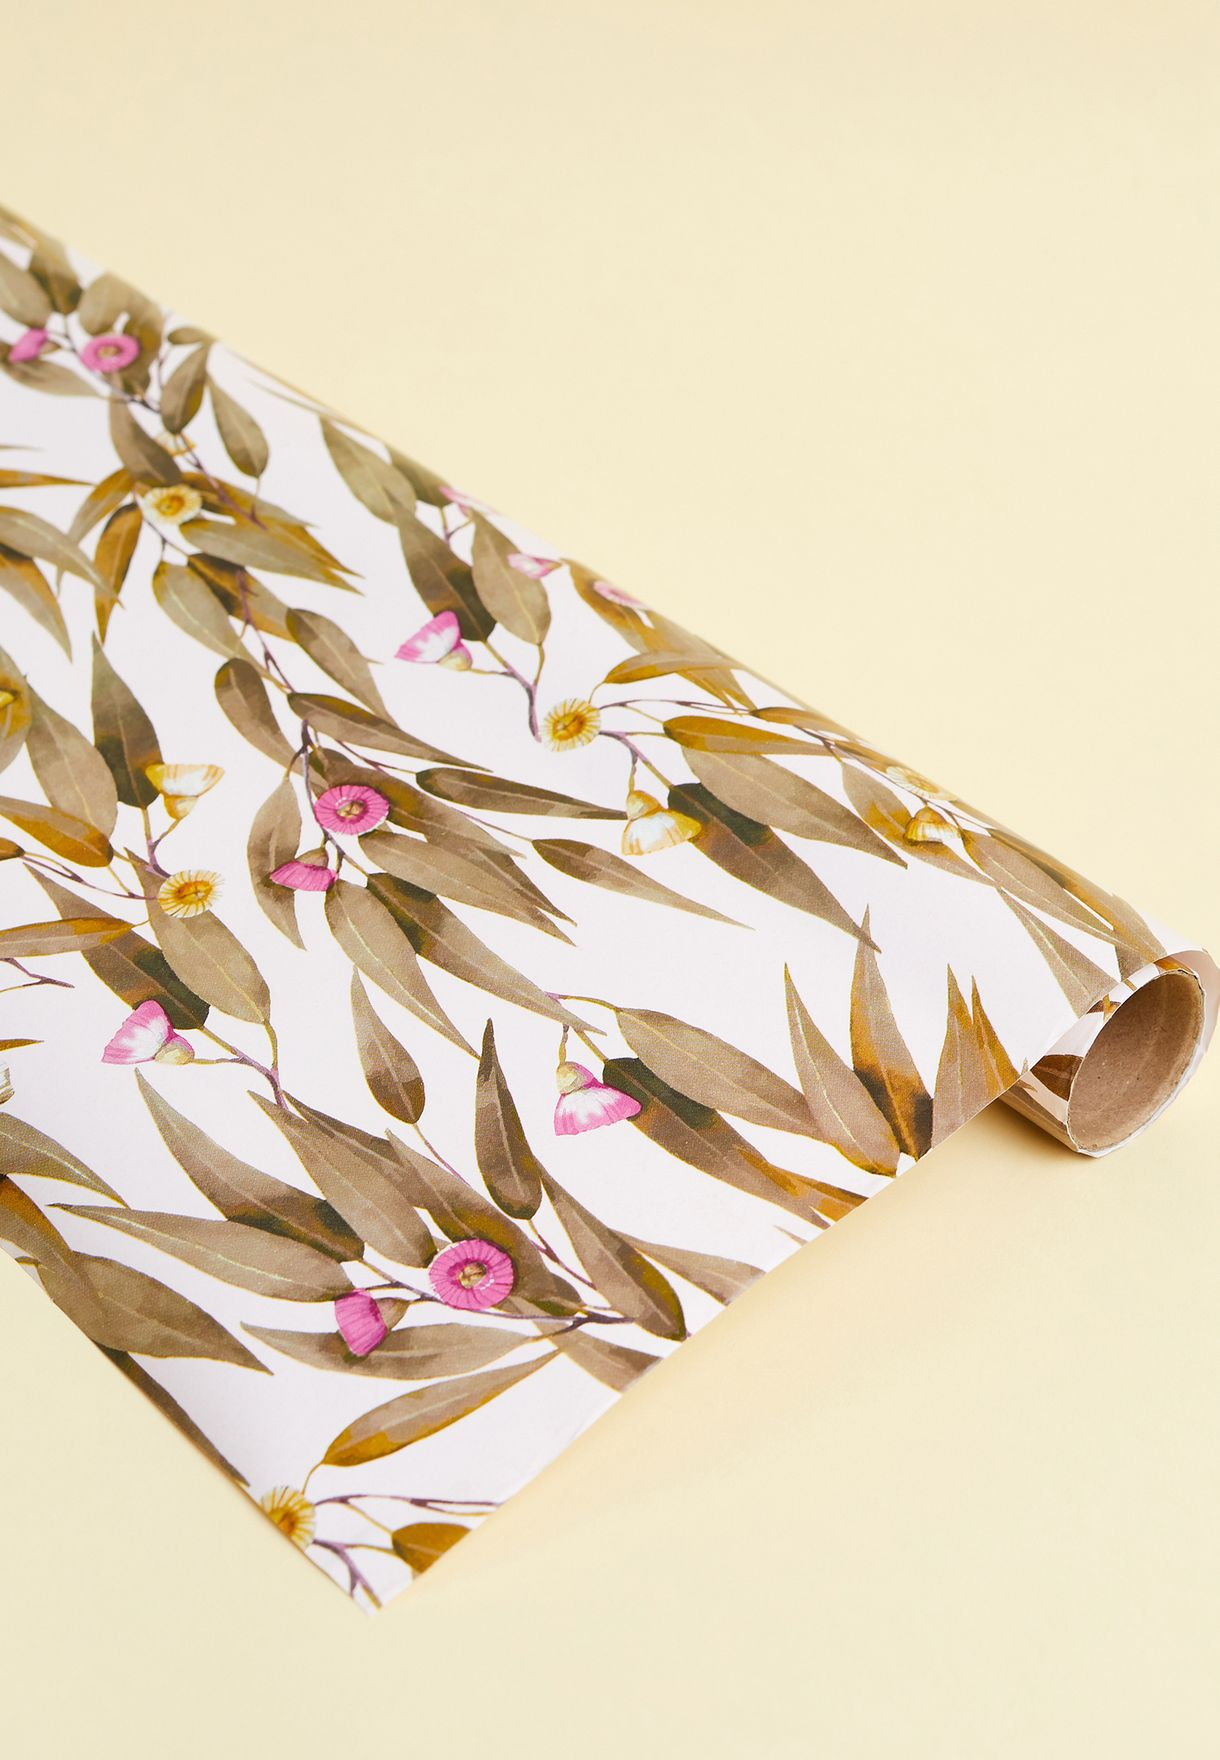 Printed Wrapping Paper Roll